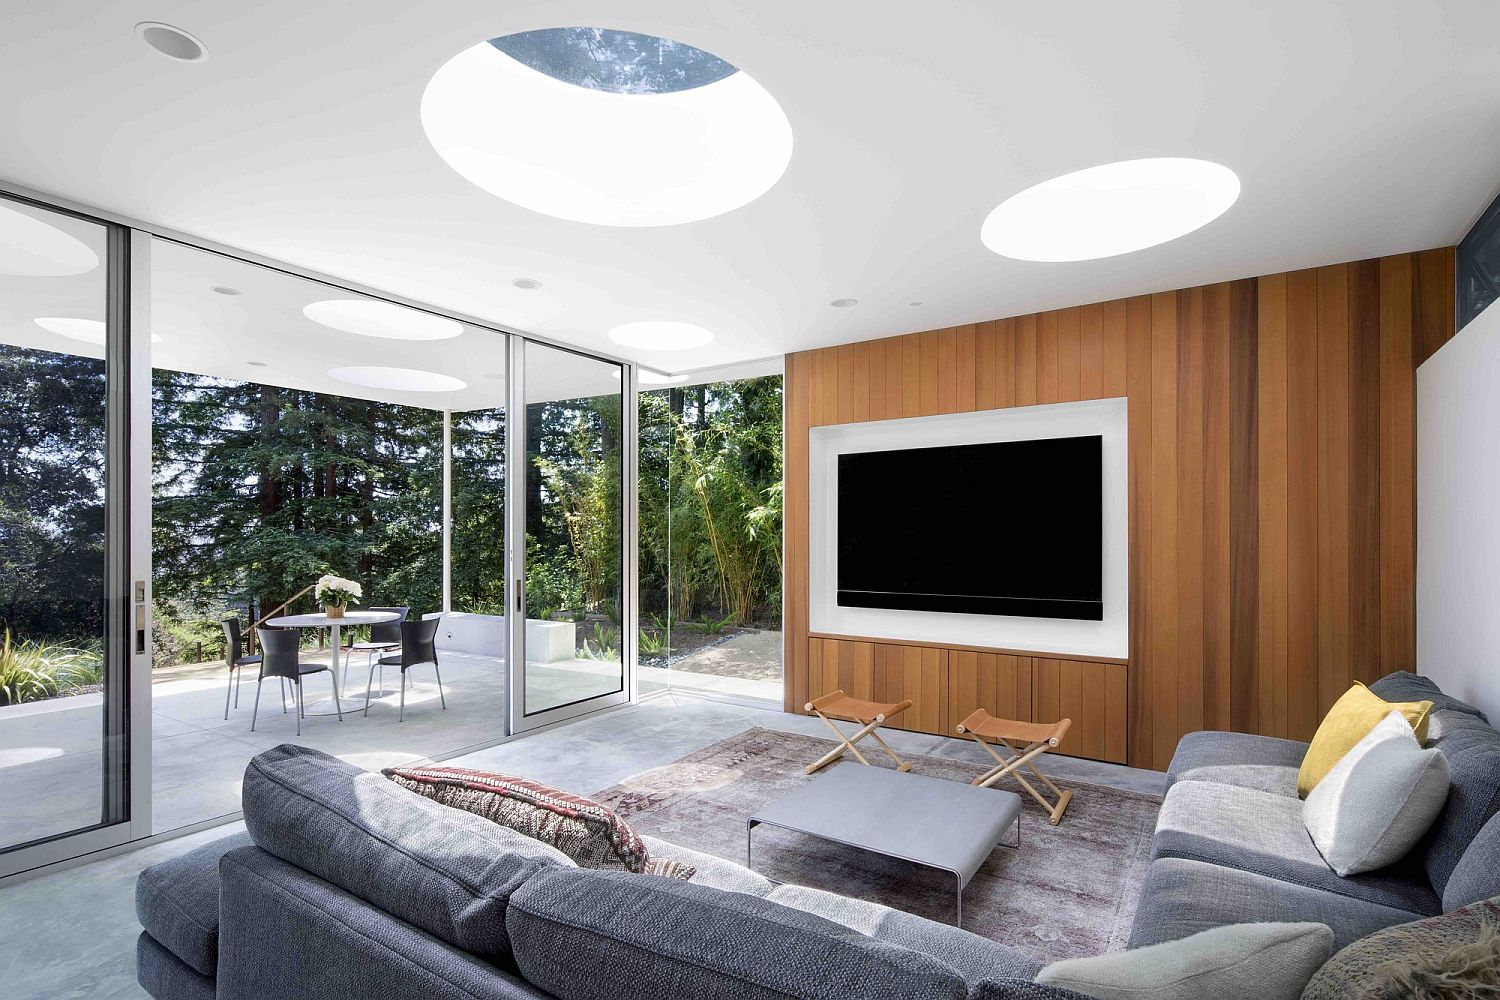 Media-room-and-sitting-area-at-the-Mill-Valley-Guesthouse-with-skylights-and-a-breezy-ambiance